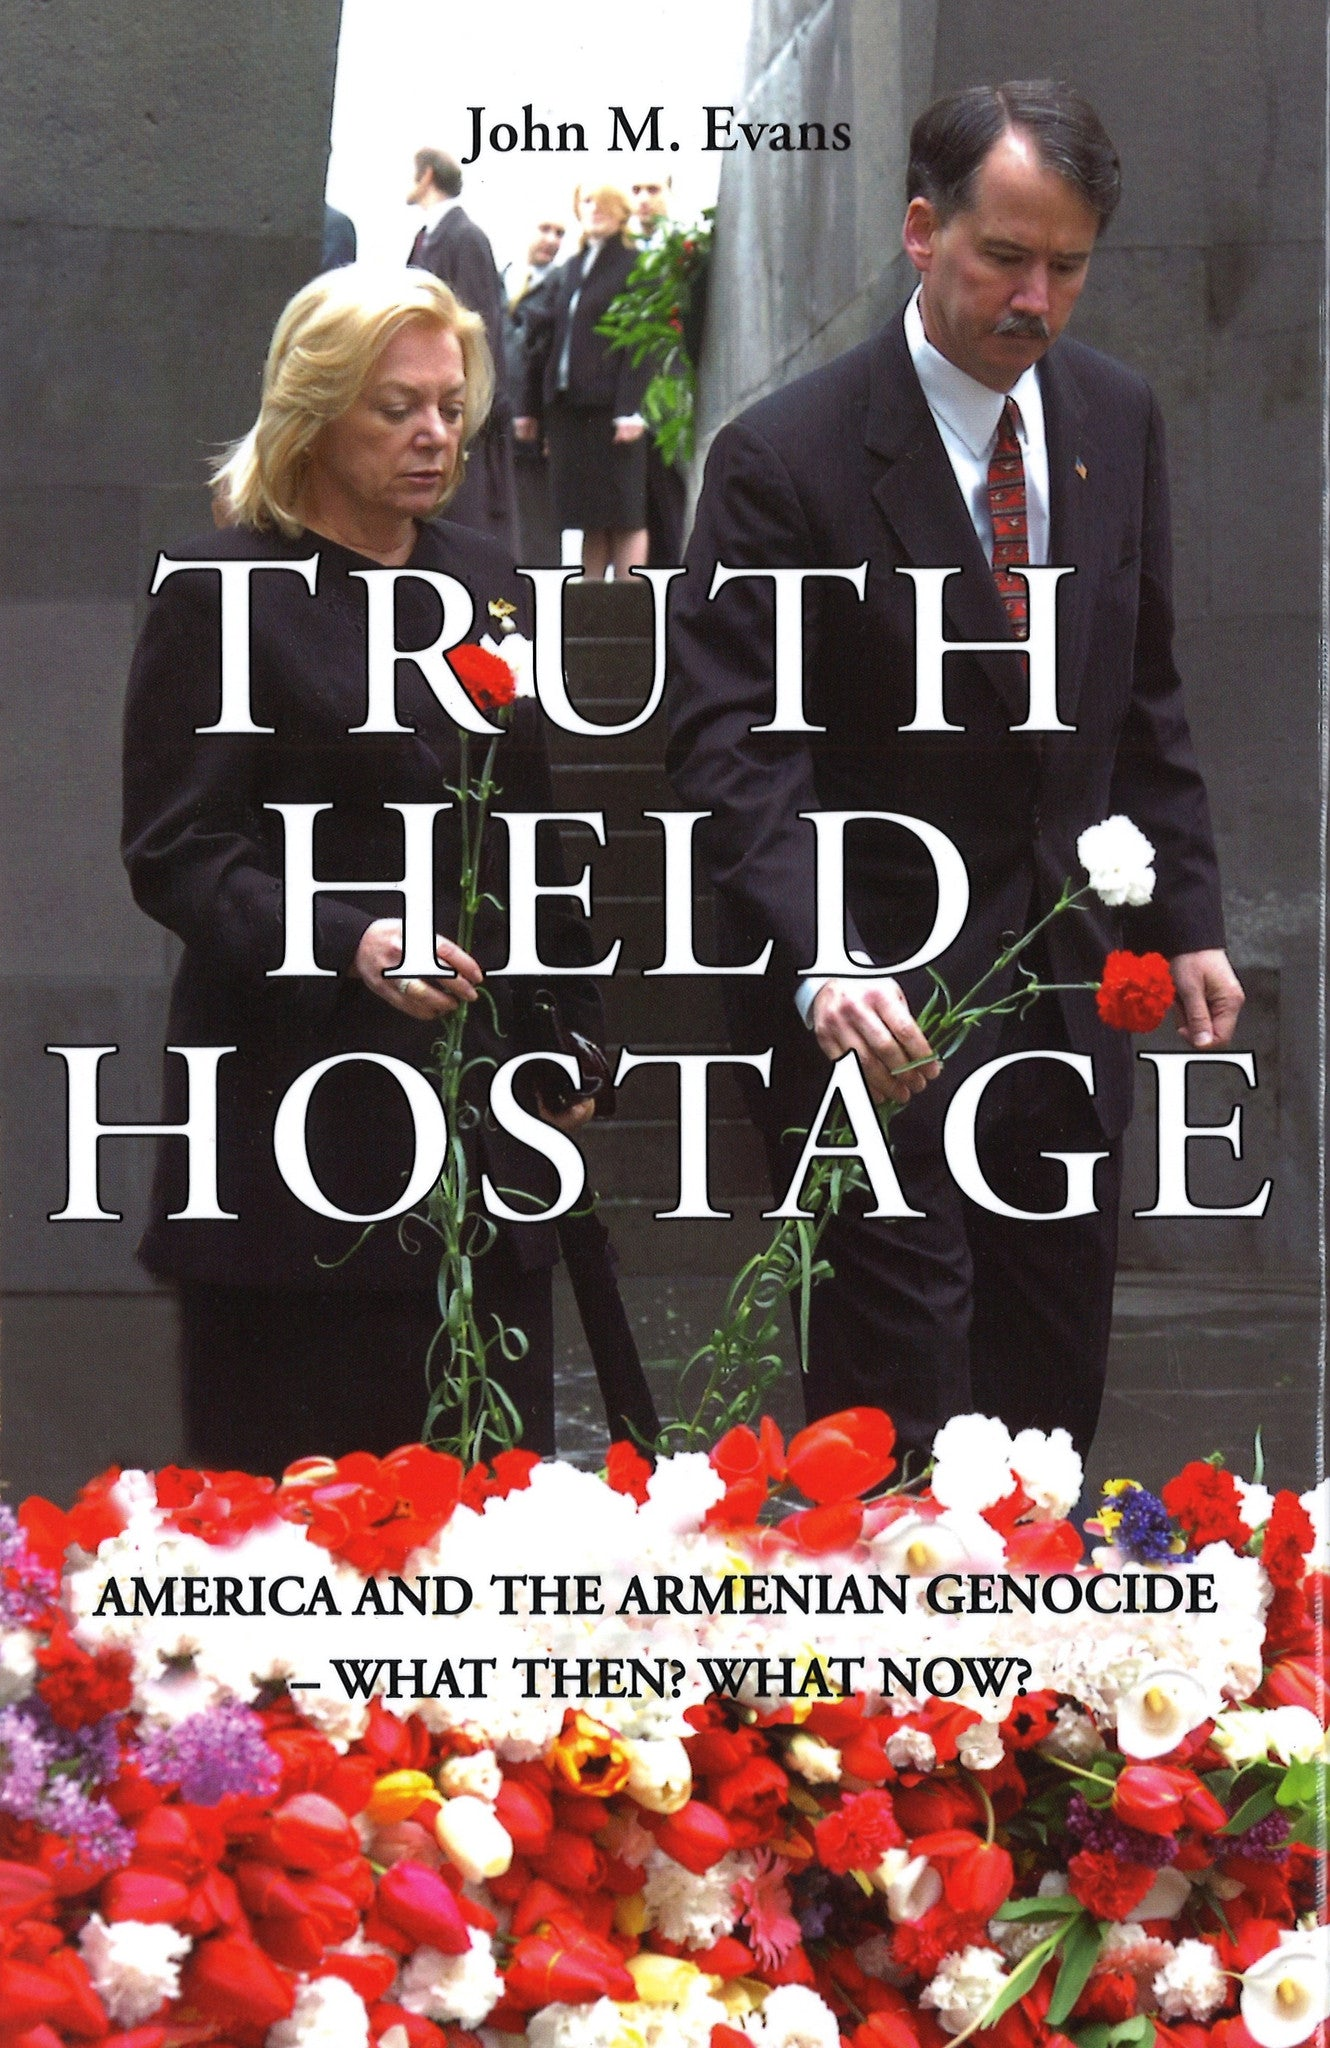 TRUTH HELD HOSTAGE: America and the Armenian Genocide What Then? What Now?